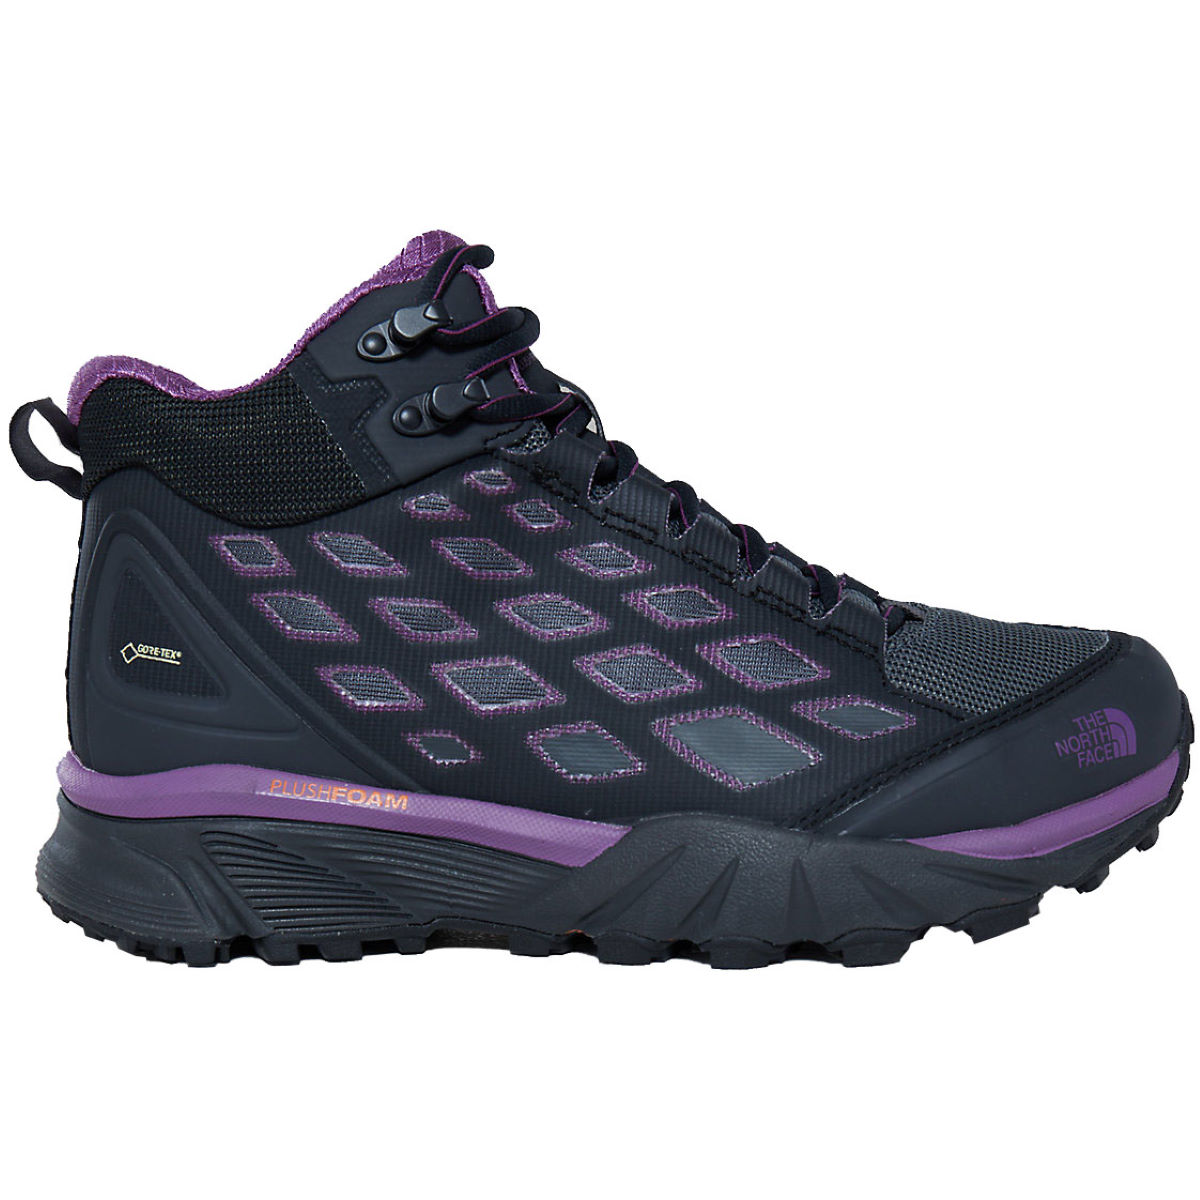 Botas The North Face Endurus HKE MD GTX para mujer - Botas y botines